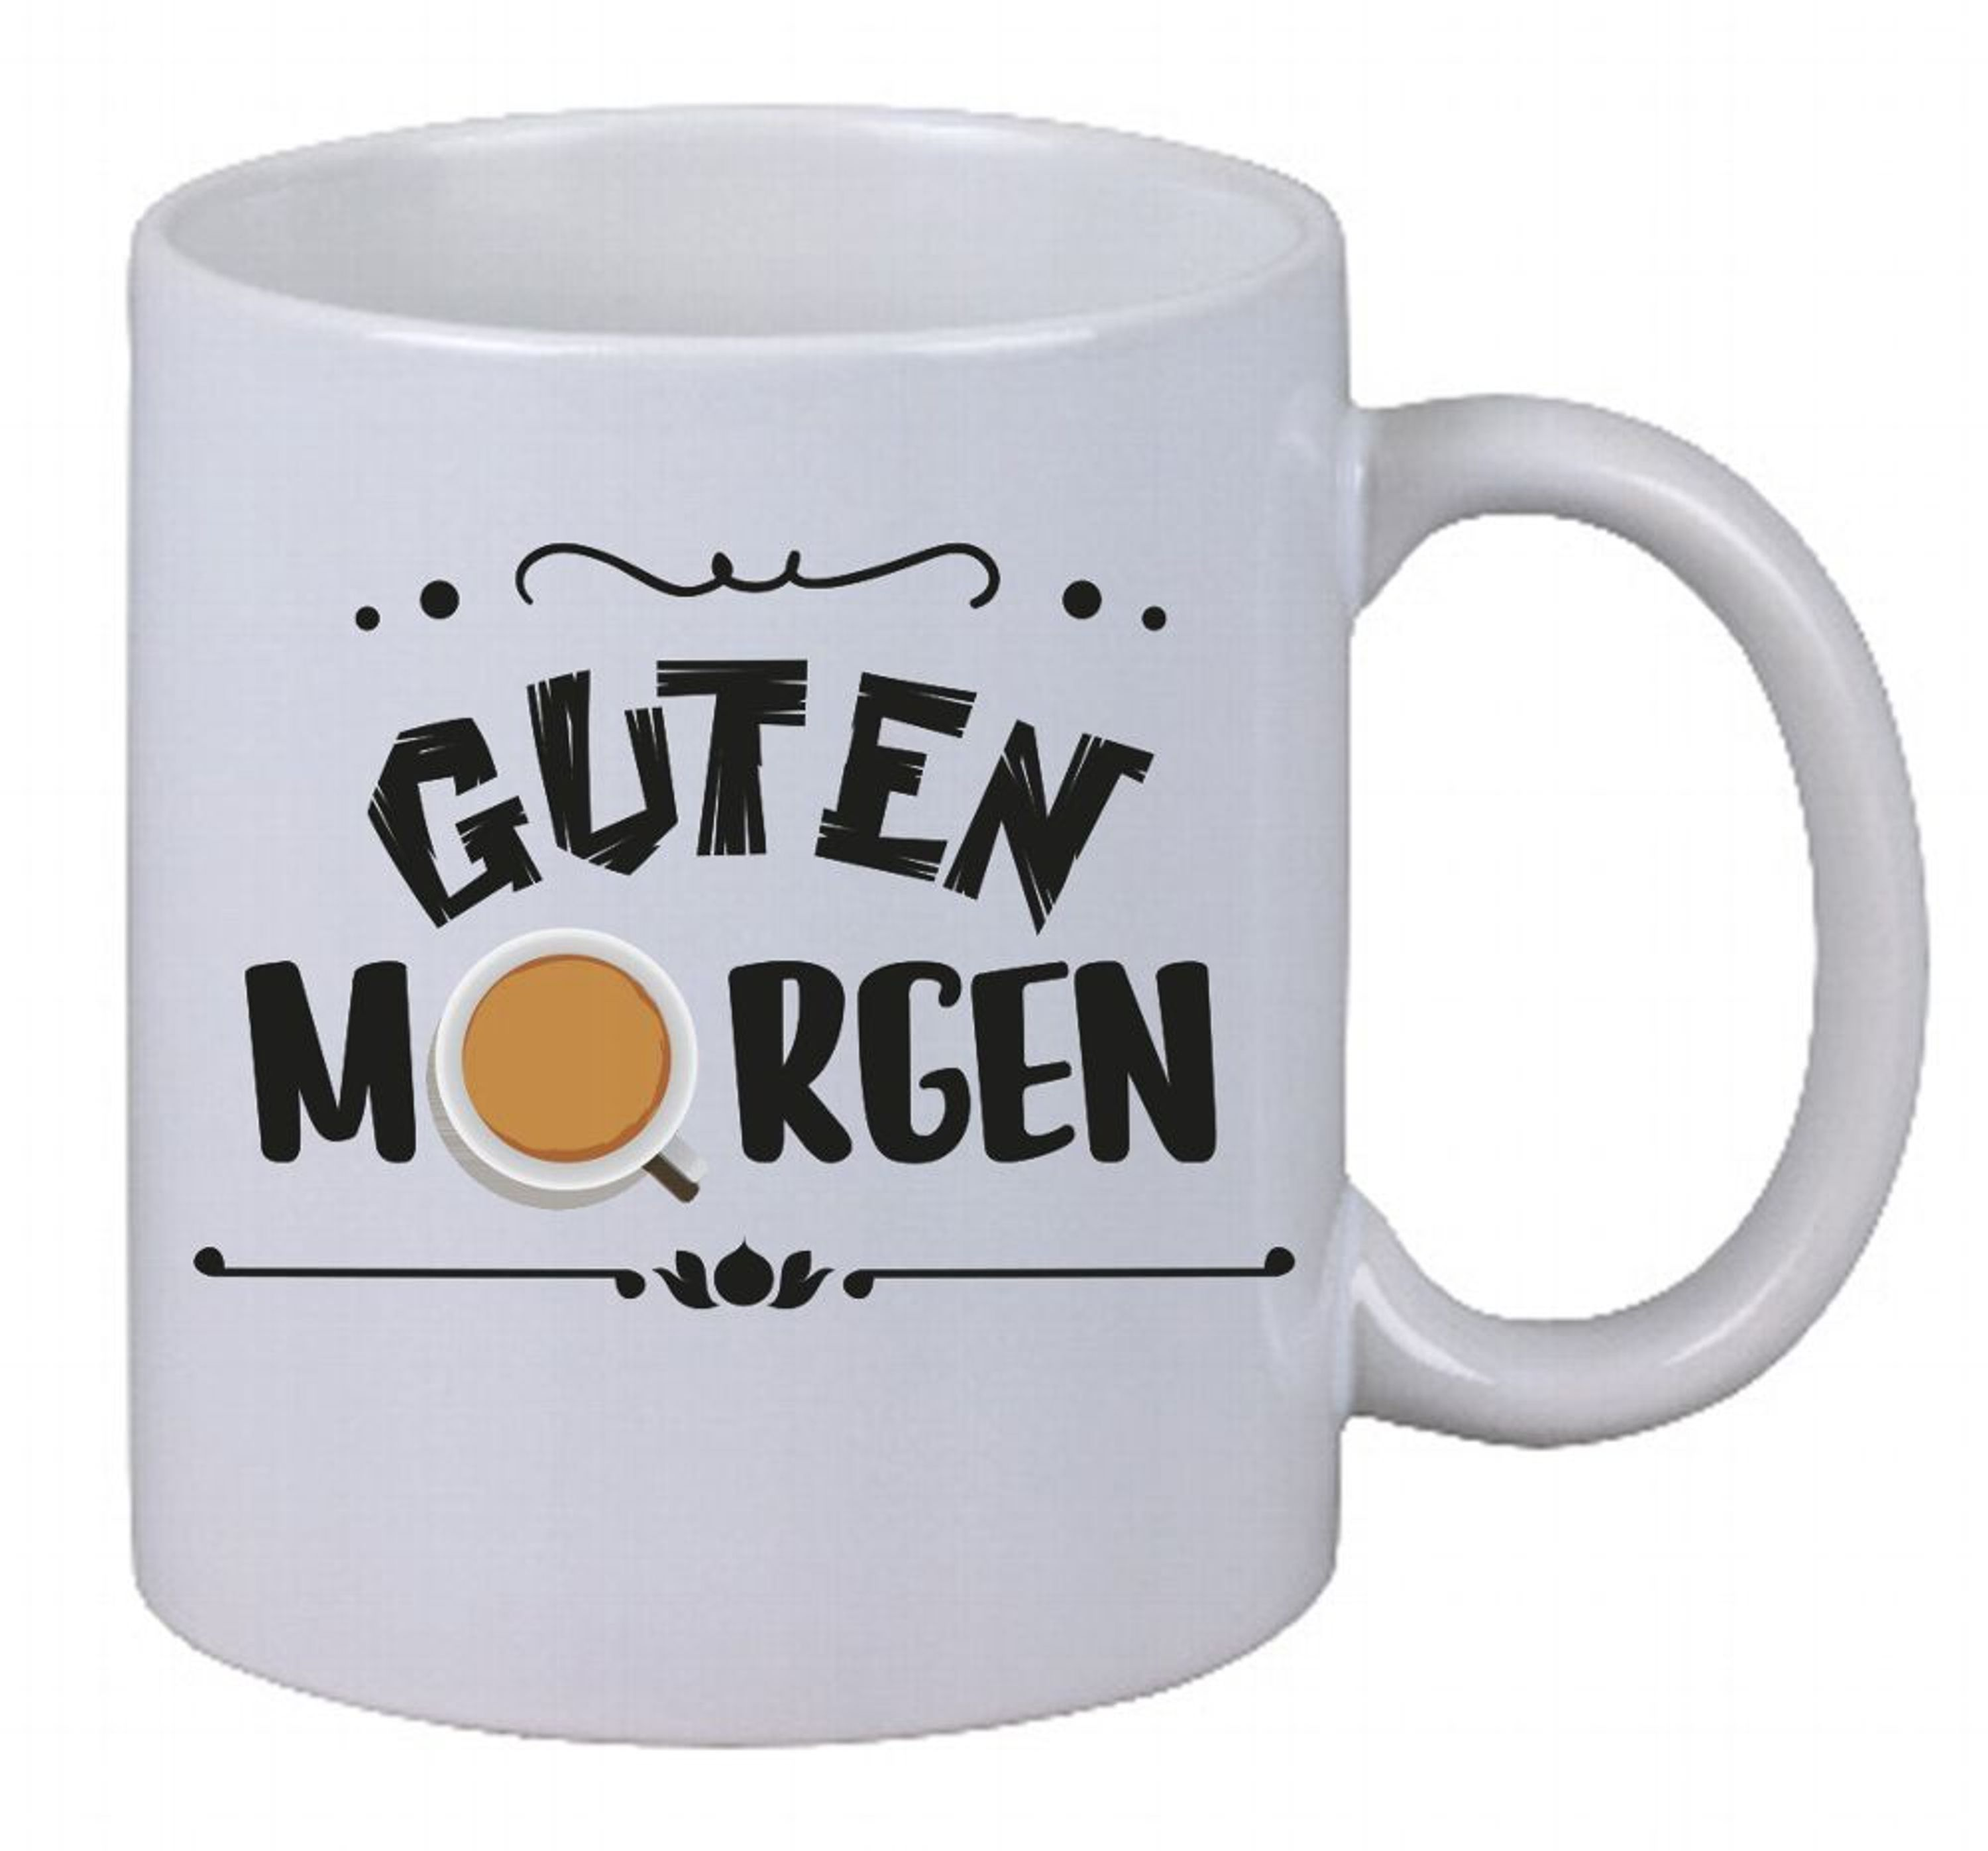 kaffee tasse guten morgen kaffe cappuccino latte macchiato essen fun gag decal kaufen bei. Black Bedroom Furniture Sets. Home Design Ideas